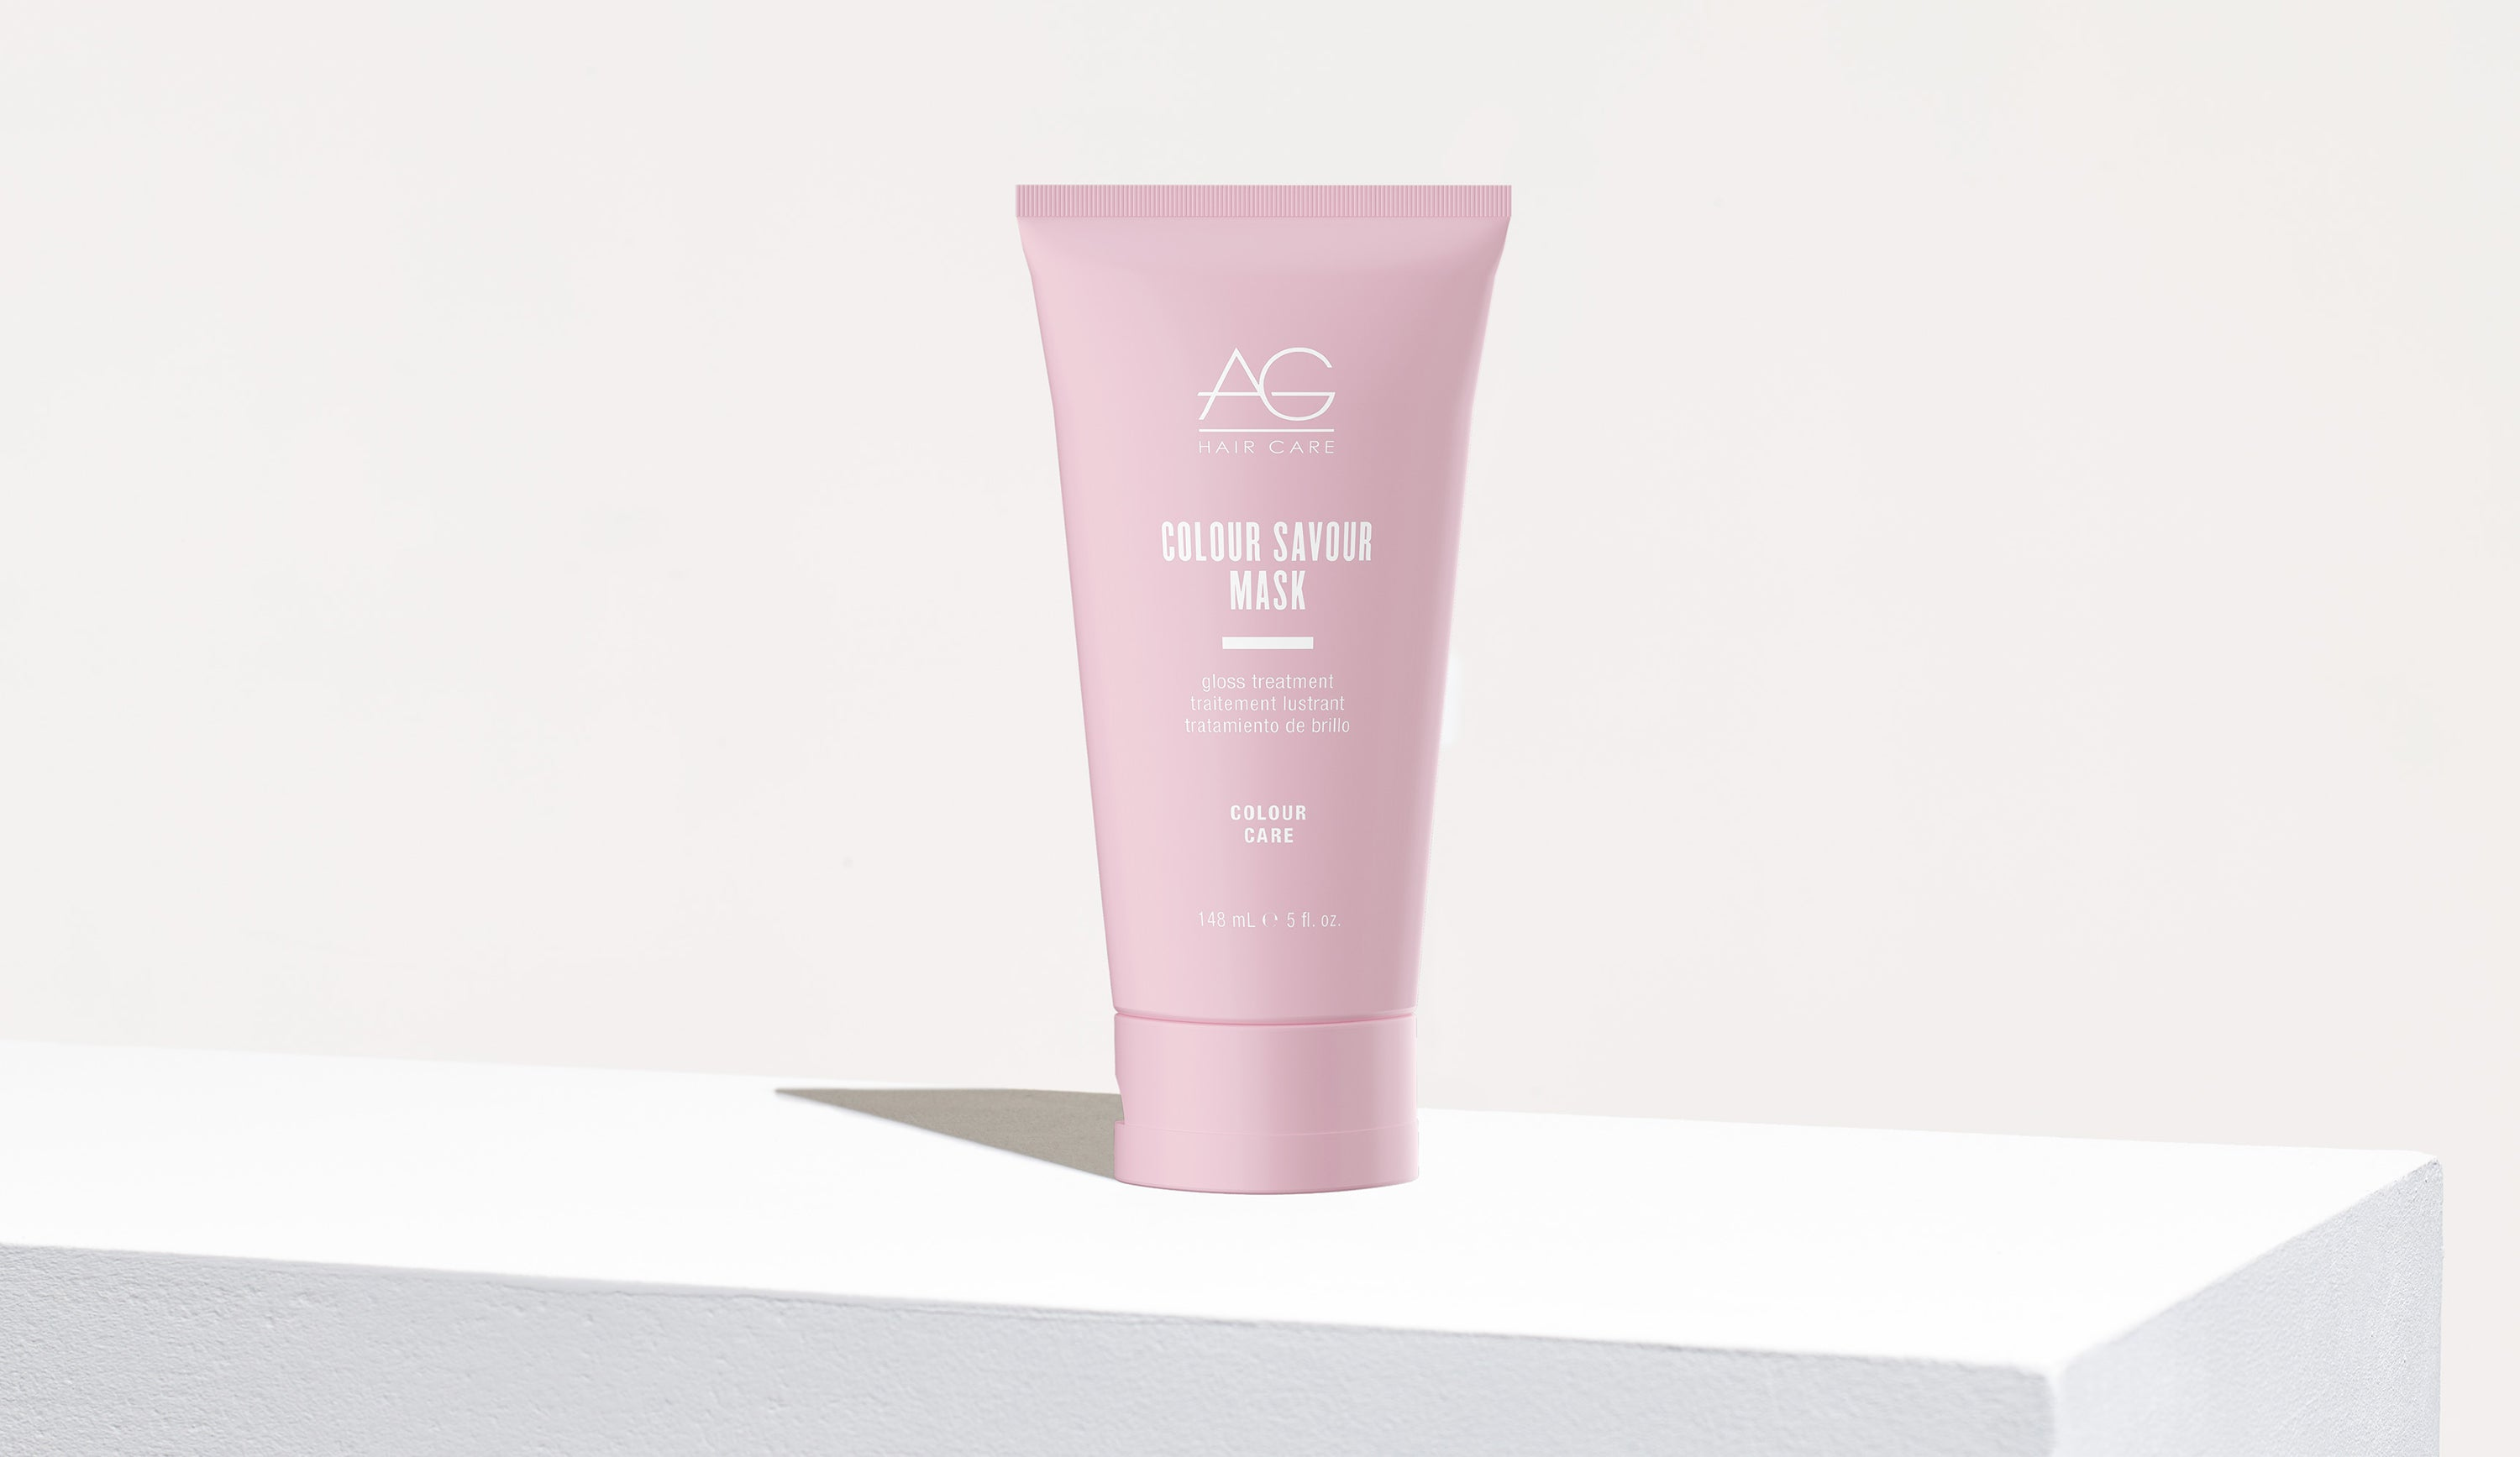 AG Hair Colour Savour Mask gloss treatment